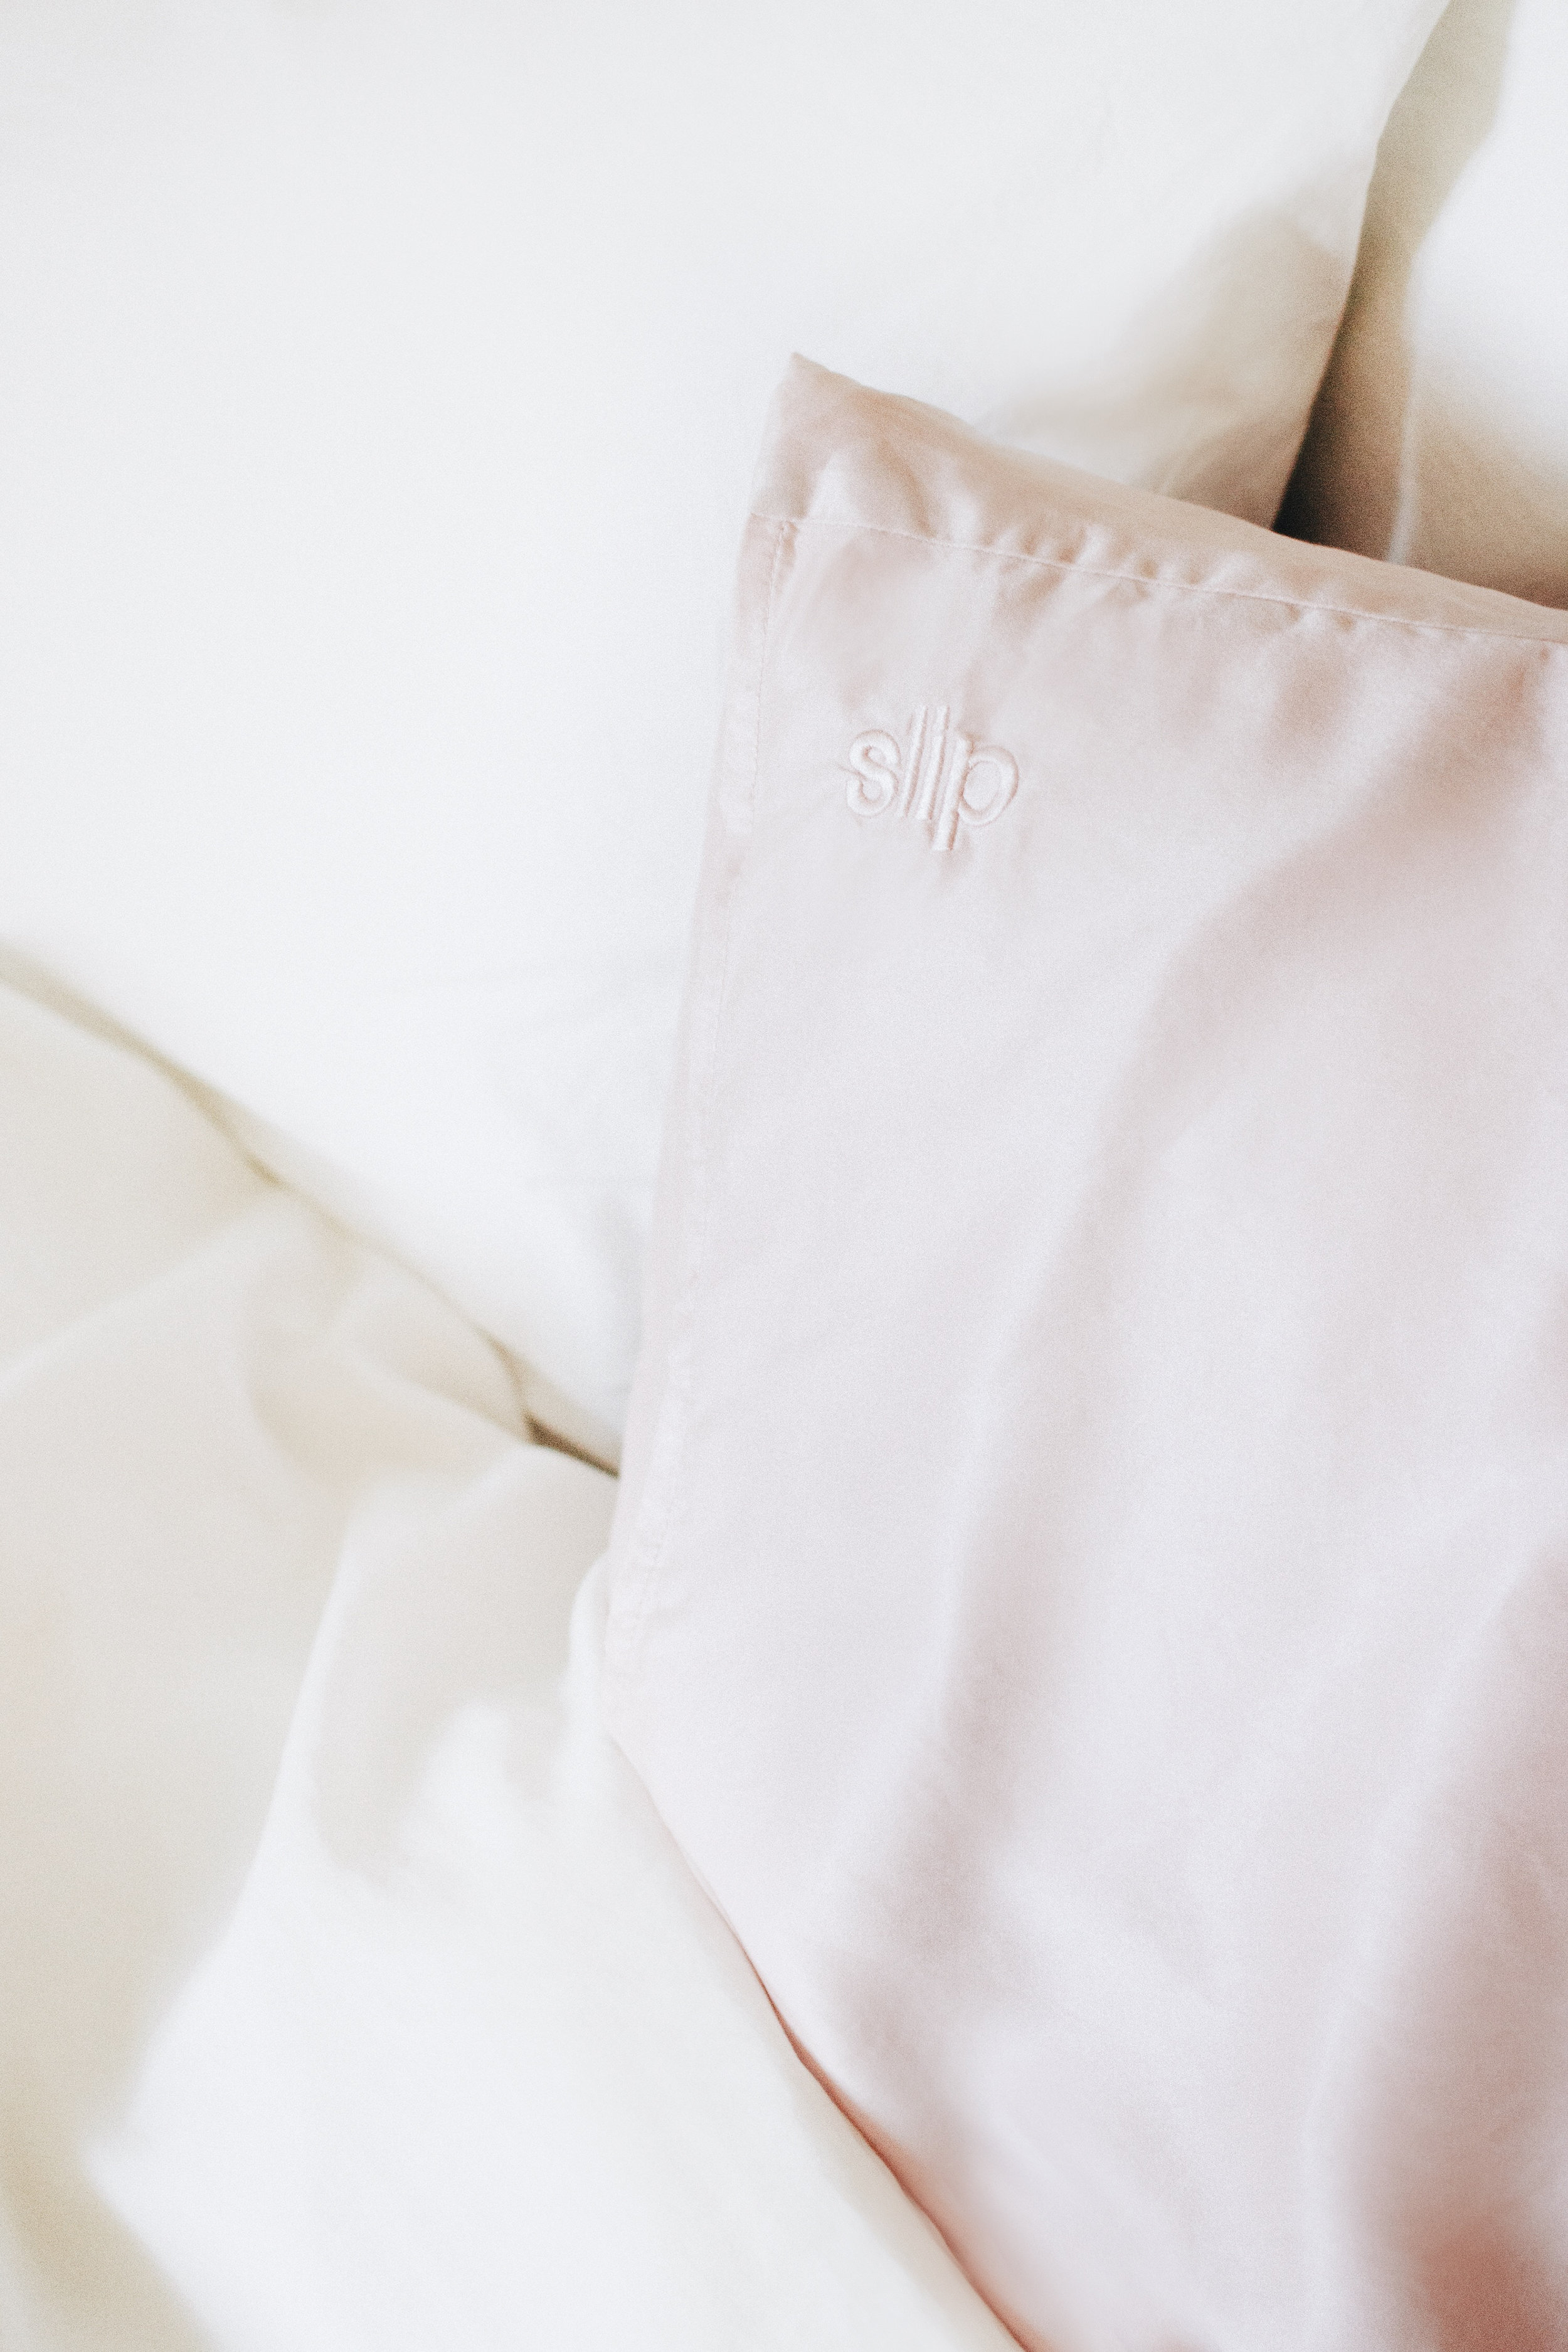 Investing in a silk pillowcase - Waking up with sleep creases on your face isn't an attractive look and as I have done many a time, it's even worse when you've rocked up to work with them still there! Sleep creases are actually an indication of damage from sleeping on a cotton pillowcase and when I saw that my sister had a Slip Pure Silk Pillowcase -which came highly rated from her -I decided to invest in one of my own. Having had mine for about six months now, these luxury pillowcases are a treat for both the skin and the hair as they're really gentle and never pull or tug on our delicate features. Sleep creases can turn into wrinkles over time, which the Slip Pure Silk Pillowcase helps prevent and they're even said to be more hydrating.As cotton is more absorbent than silk, this means cotton pillowcases can draw moisture from your skin and take away from our expensive night creams, so if you have a dry skin type like I do, investing in a silk pillowcase is ideal. Silk also breathes a lot better than cotton, meaning it'll keep you cool in summer and warm in the winter. On hot summer nights, I love flipping over my pillows to the cool side, but now I don't need to!